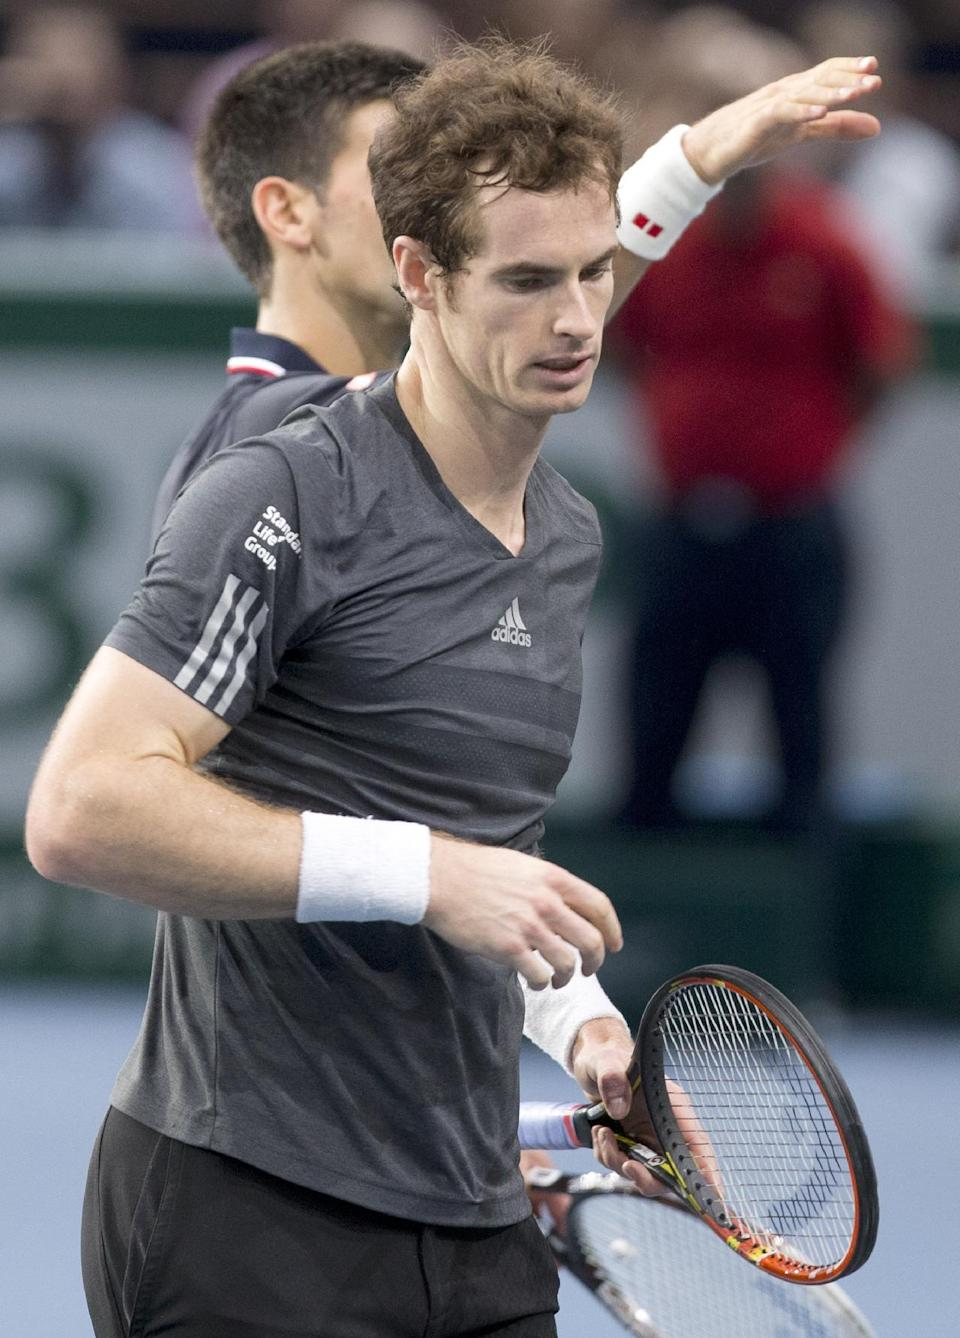 Andy Murray of Britain leaves the court after losing a match against to Serbia's Novak Djokovic during their quaterfinal match at the ATP World Tour Masters tennis tournament at Bercy stadium in Paris, France, Friday, Oct. 31, 2014. Djokovic Won the match 7-5, 6-2 .(AP Photo/Jacques Brinon)